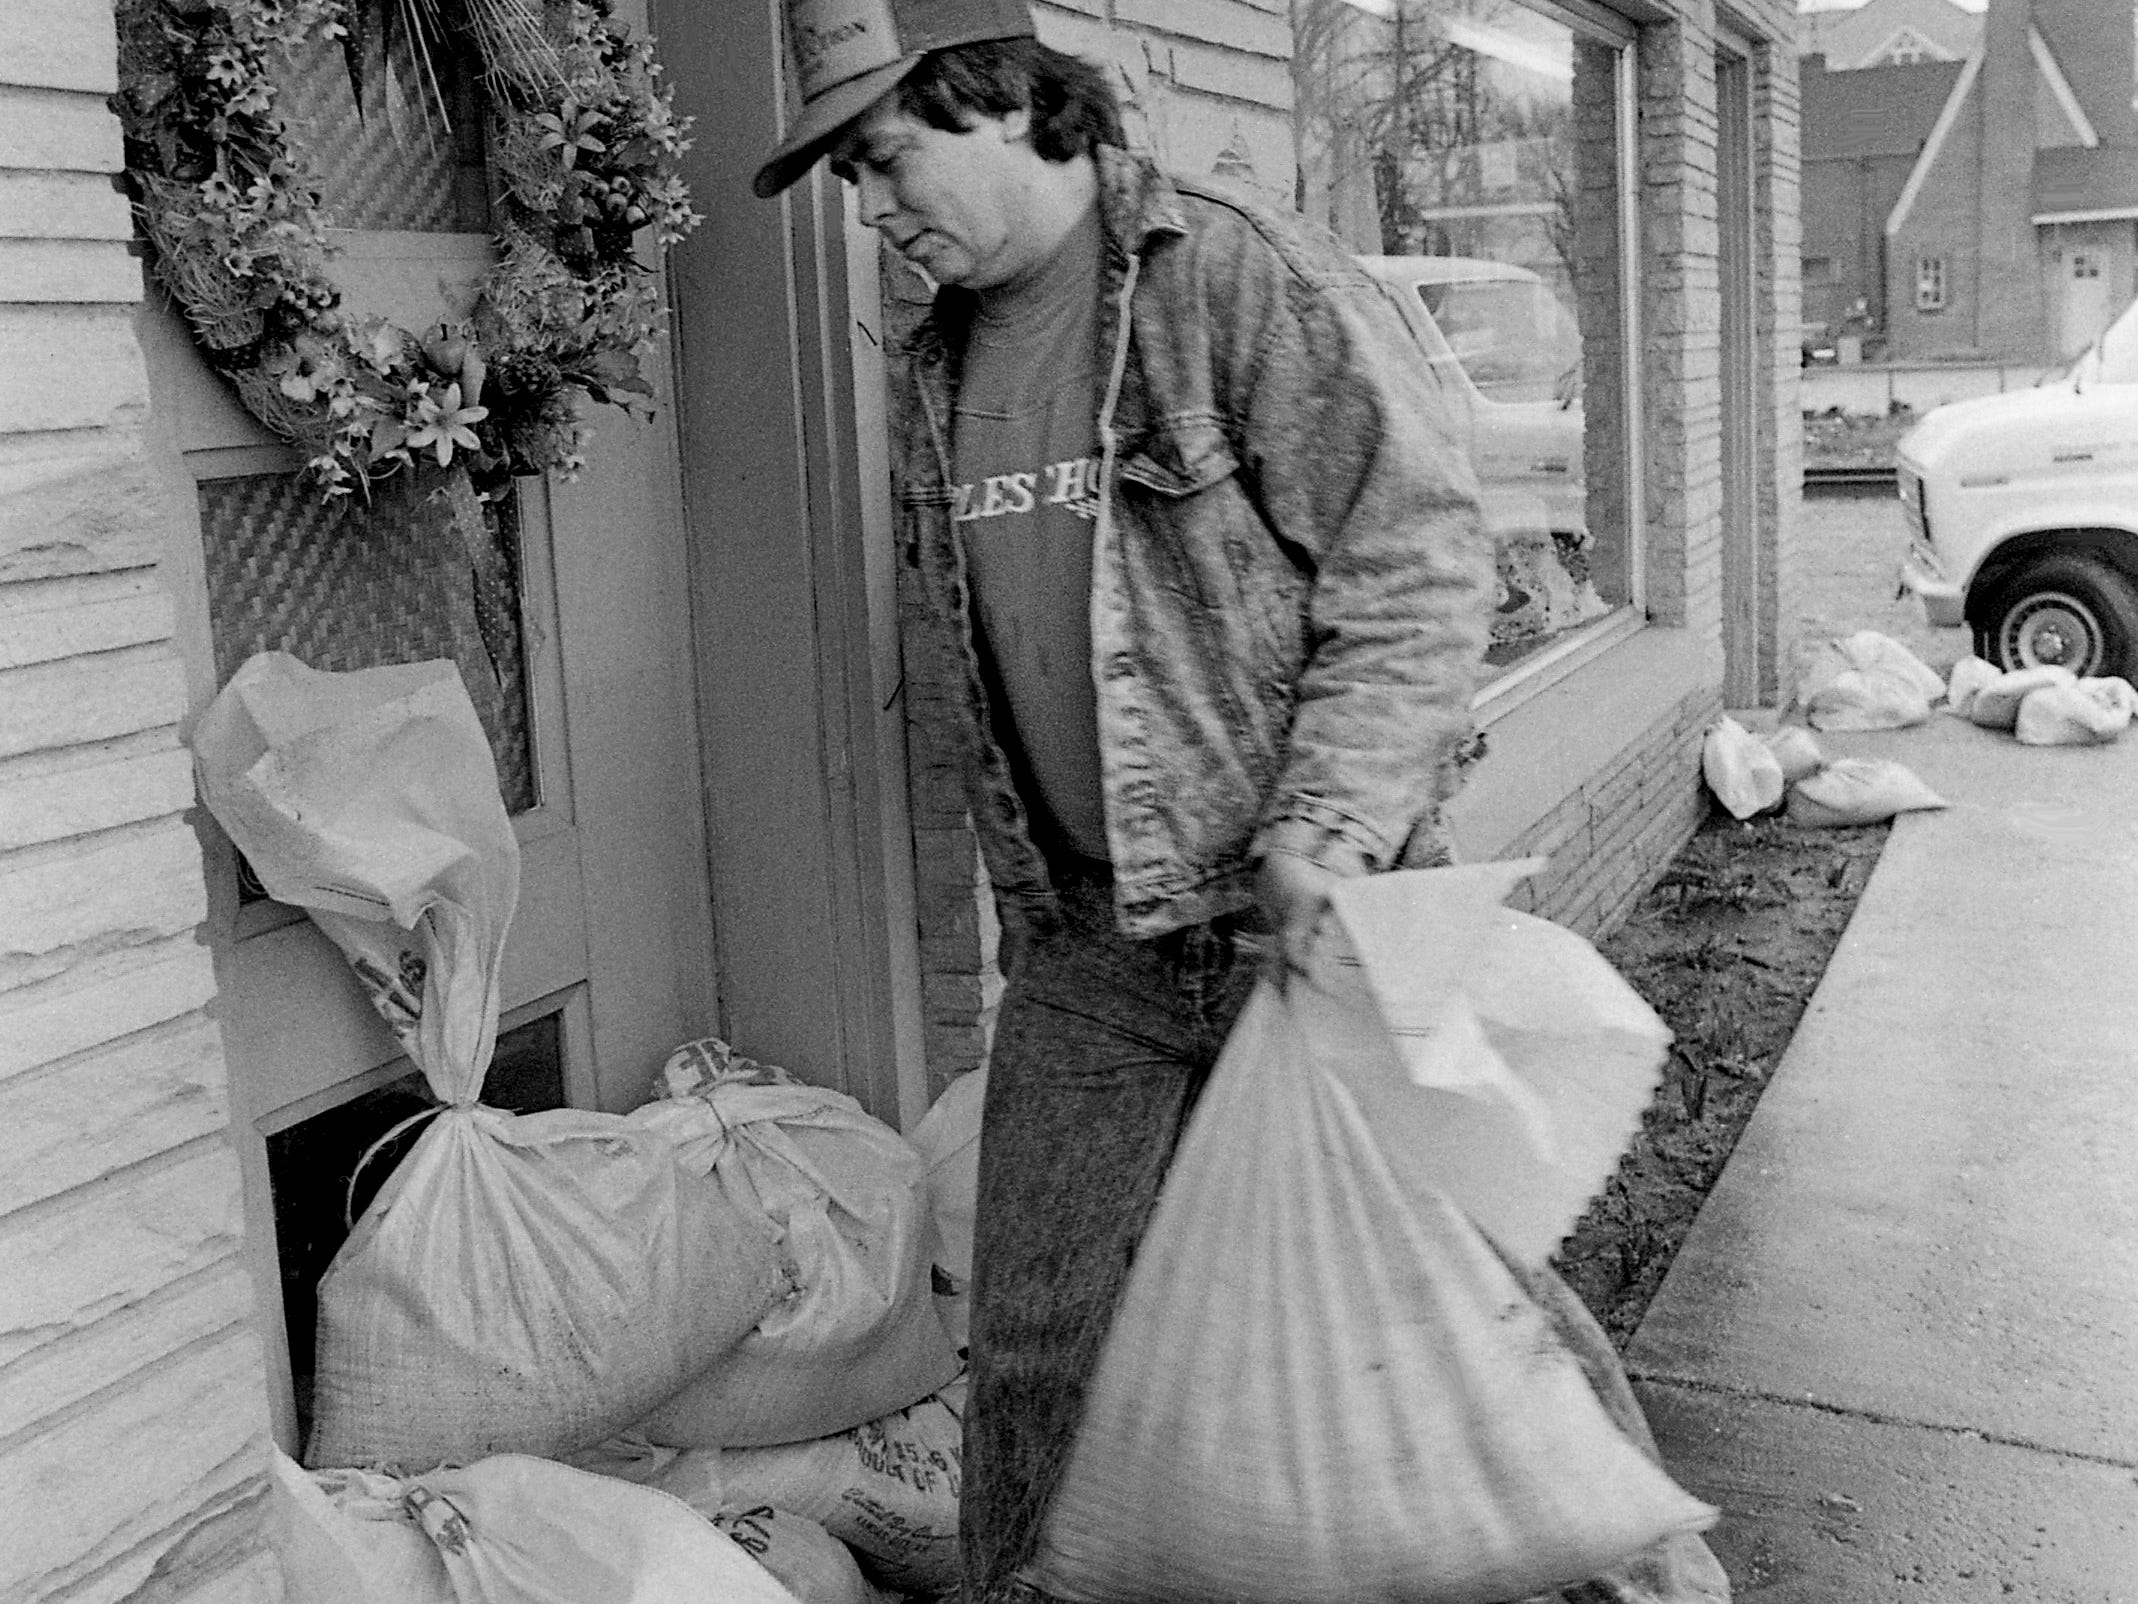 Lebanon businessman Jimmy Draper drops sand bags outside his mother's flower shop at 204 W. Main St. on Feb. 20, 1989, as more heavy rains were expected.